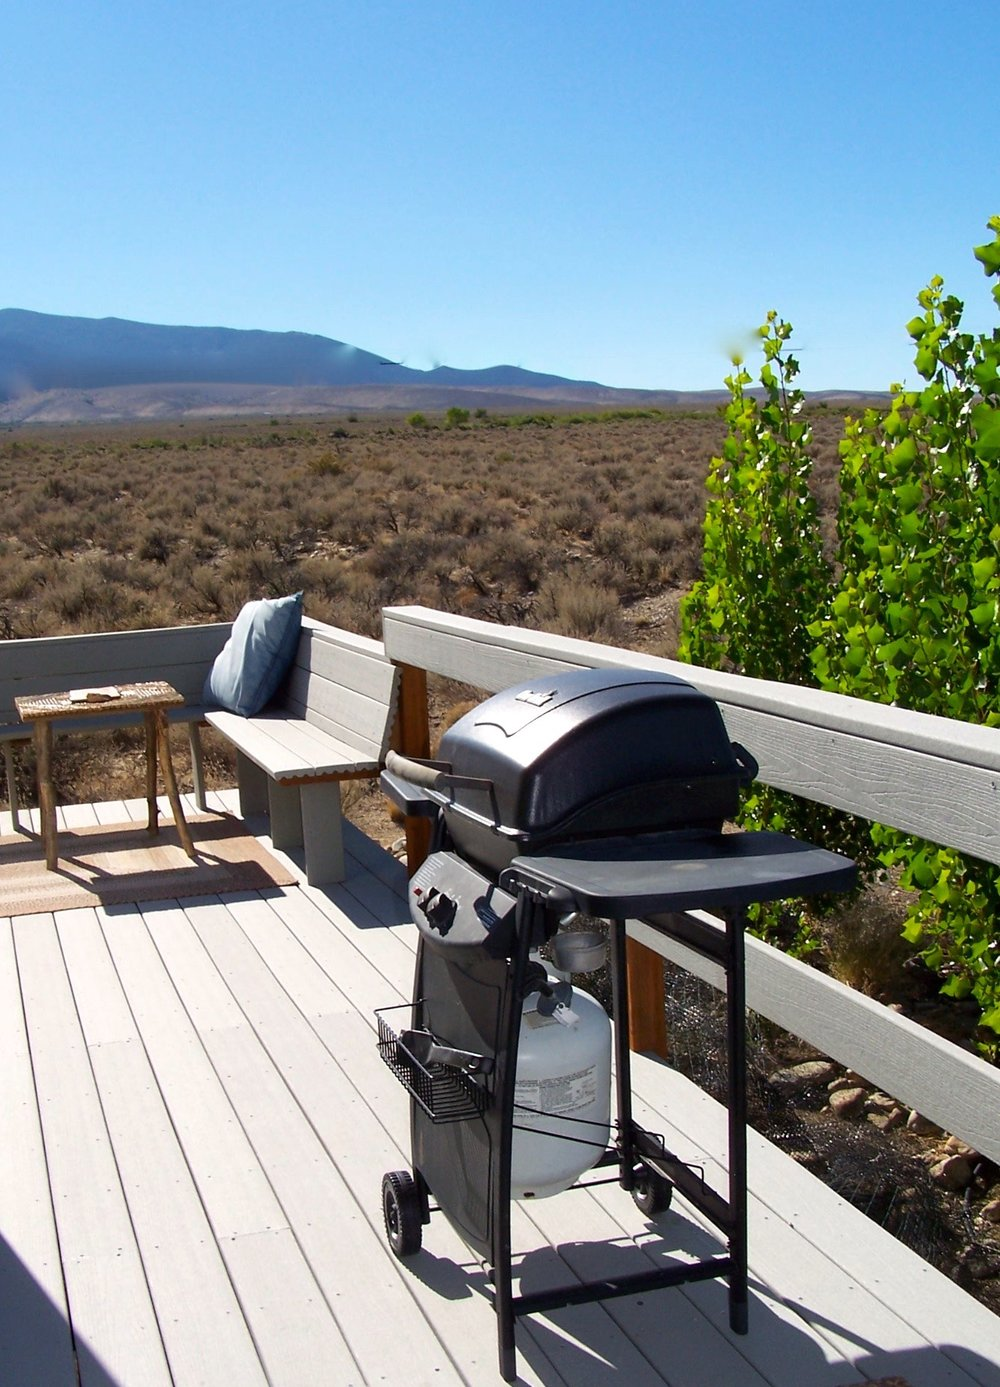 Gas barbecue grill on your private deck.